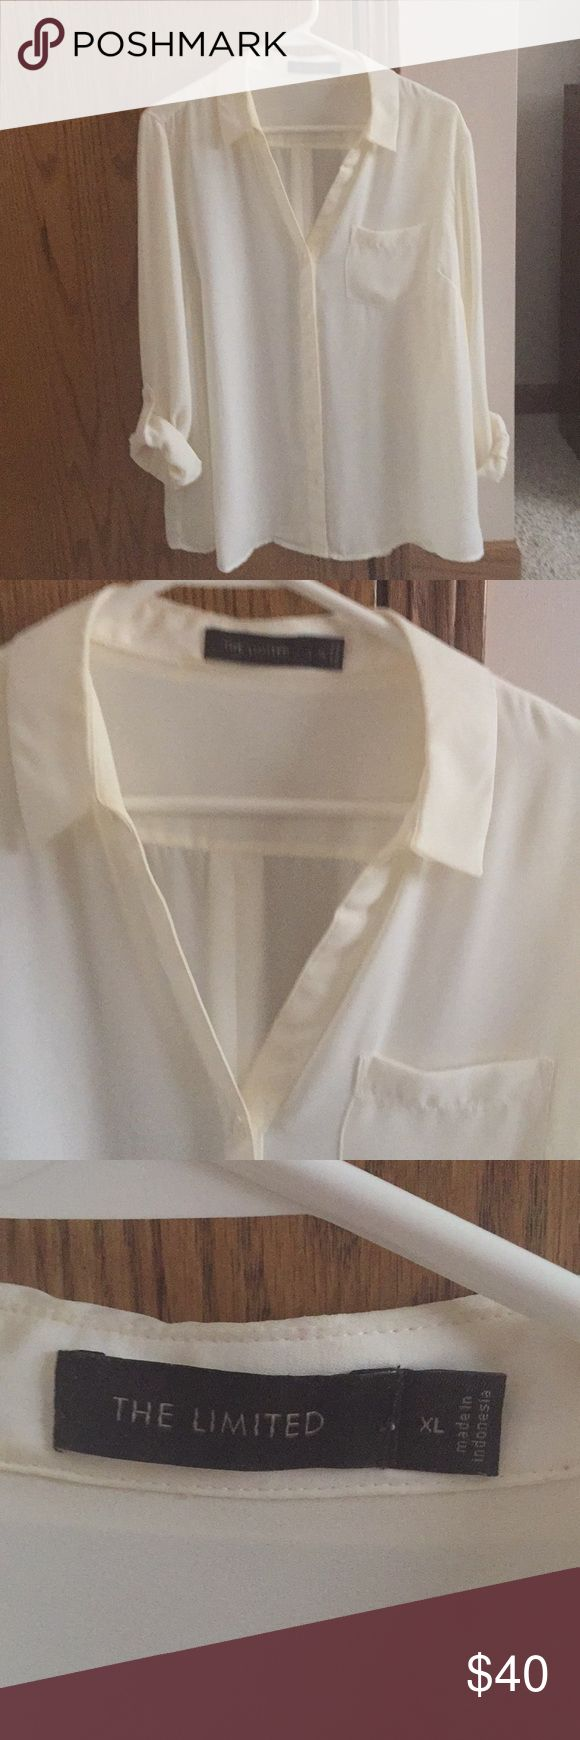 The Limited Brand Cream Button Down blouse Like new worn once! Size XL The Limited Tops Button Down Shirts